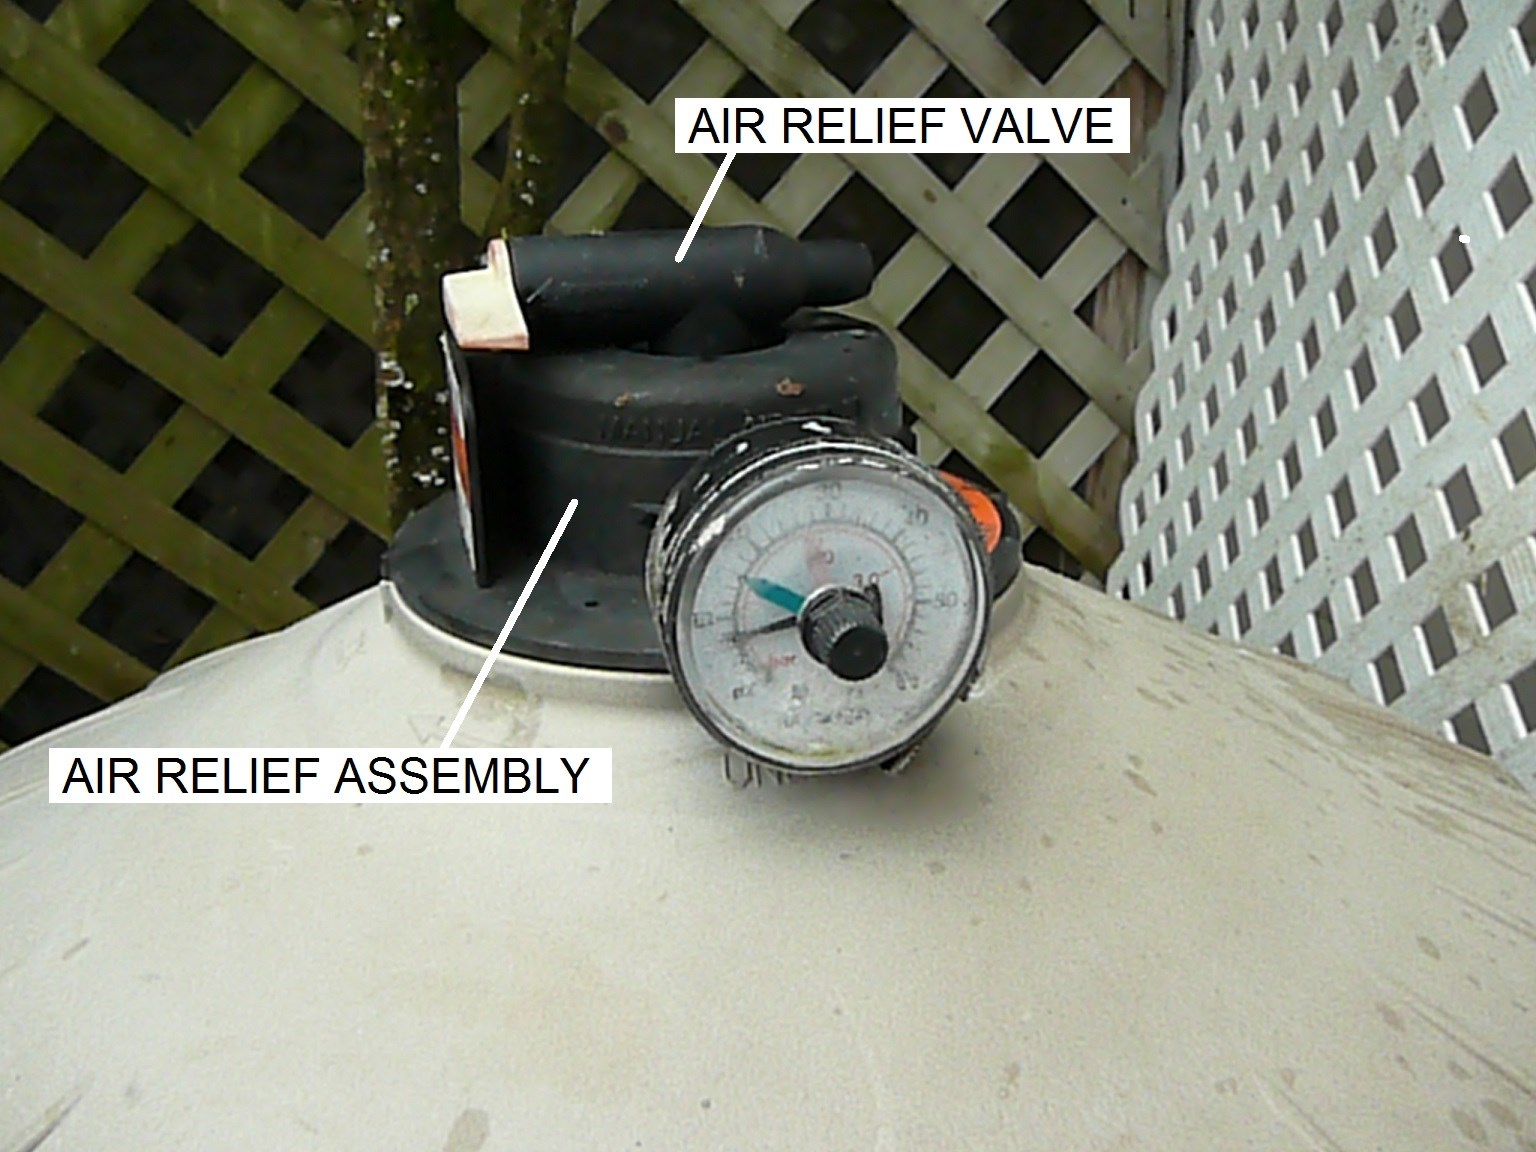 How To Replace A Hayward De Filter Air Relief Valve Pool Installation Diagram Best Pumps And Filters With Use The On Your May Be Damaged No Longer Function This Guide Shows You